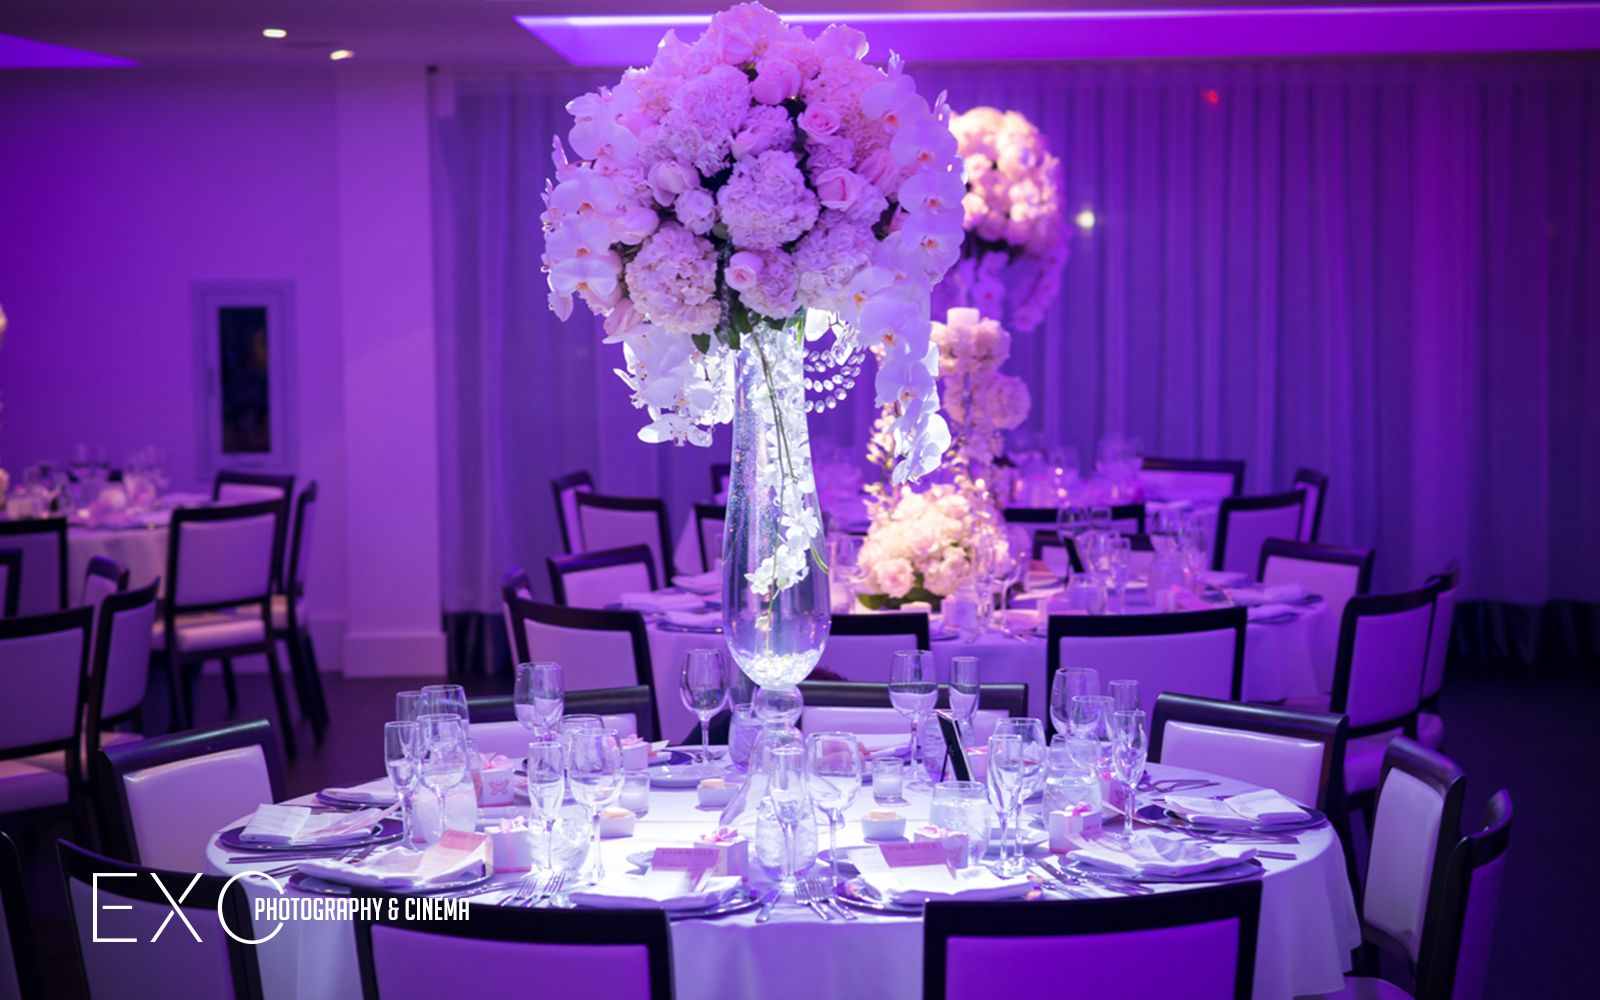 Photos from Harbor Club at Prime taken by @EXO Photography www.exophotograph...  @Brian Flowers  White flower centerpiece and white wedding cake #flowersbybrian #whiteflowers #whiteflowercenterpiece #harborclub #harborclubatprime #sushi #weddingcaterer #longislandvenue #modernlongislandvenue